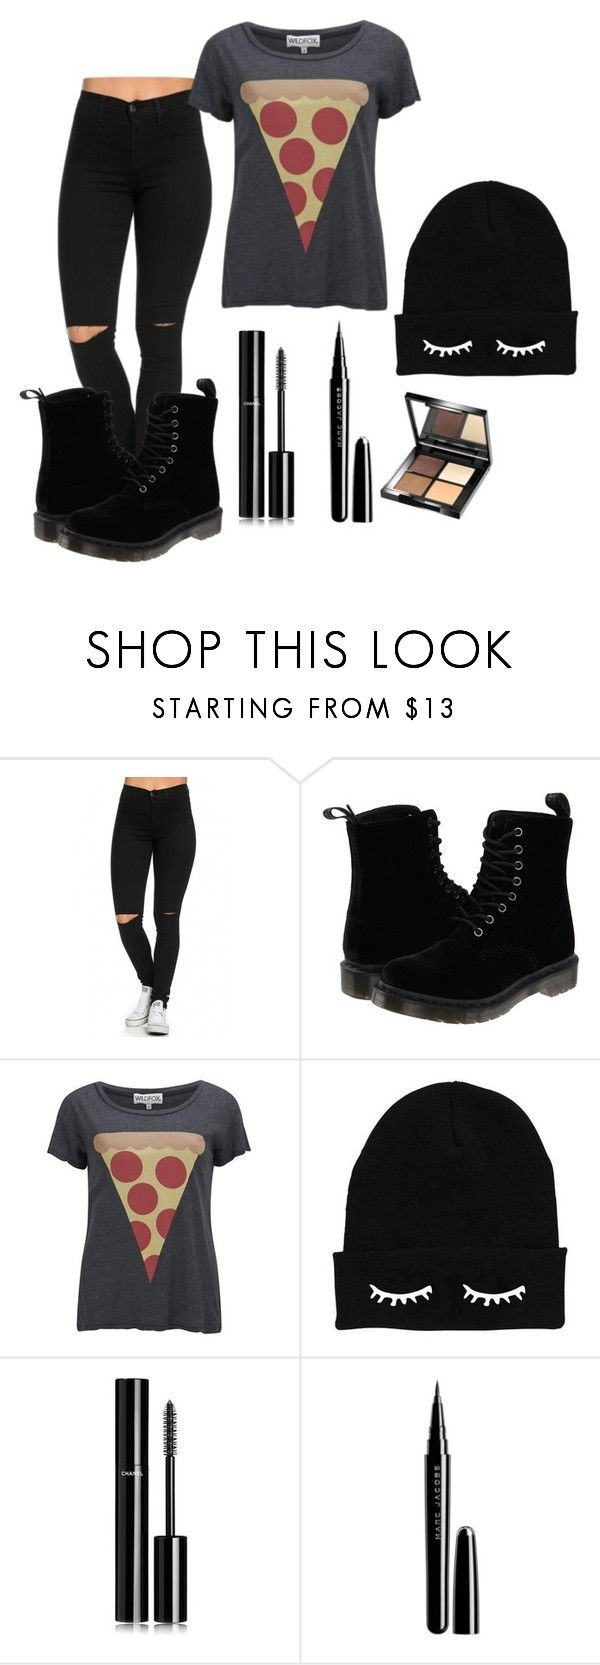 """Untitled #6"" by keepsmileanna on Polyvore featuring beauty, Dr. Martens, Wildfox, Chanel, Marc Jacobs and Organic Glam"